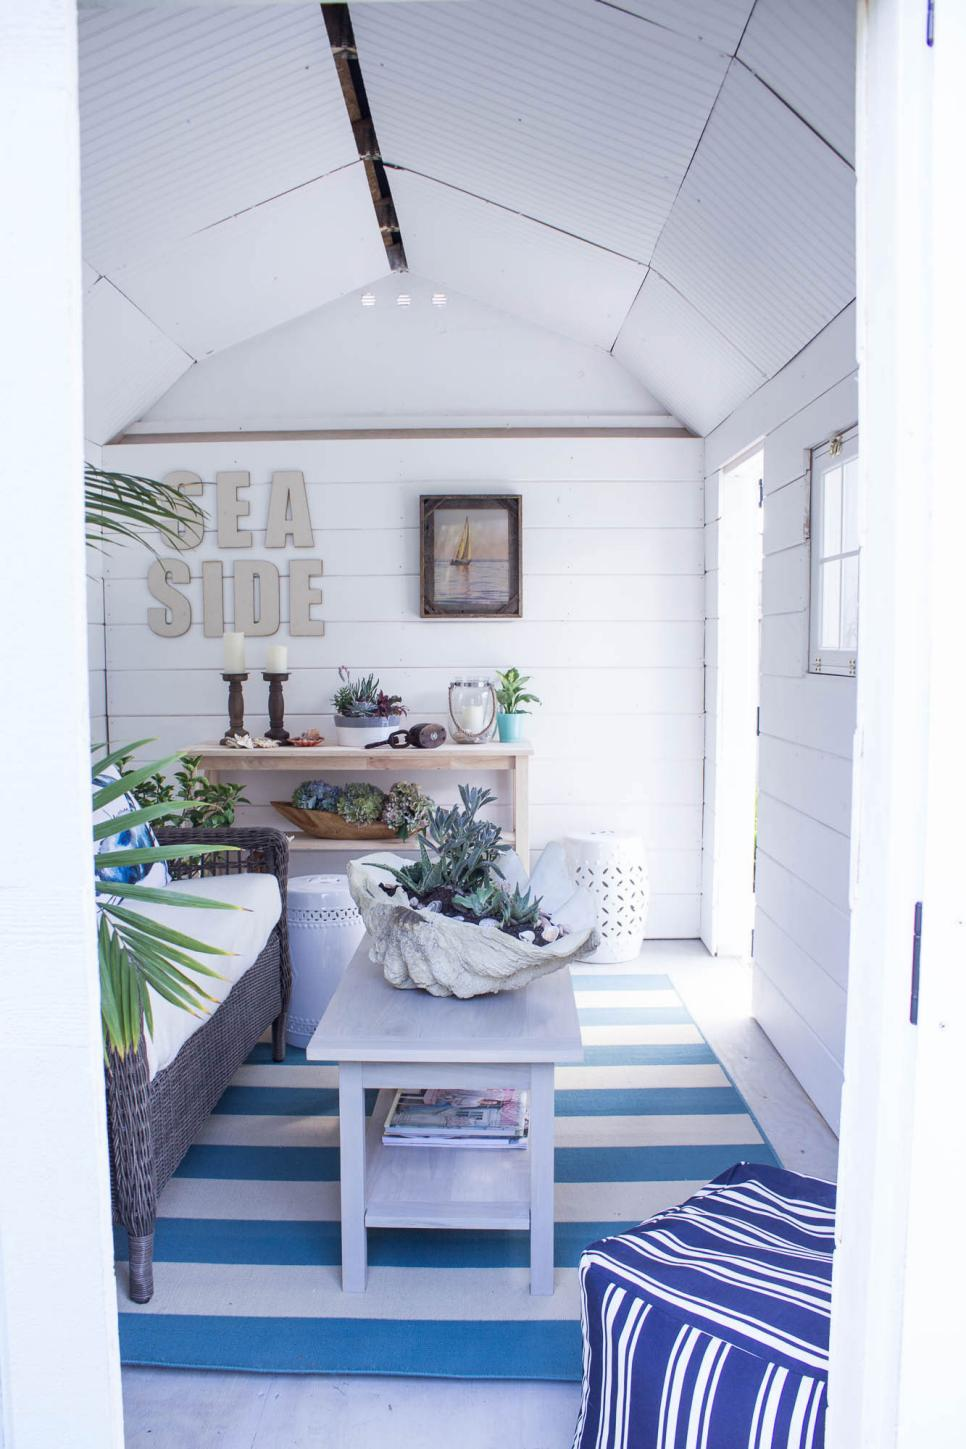 Inspiring Ideas for Shed Makeovers | Room Makeovers to ...